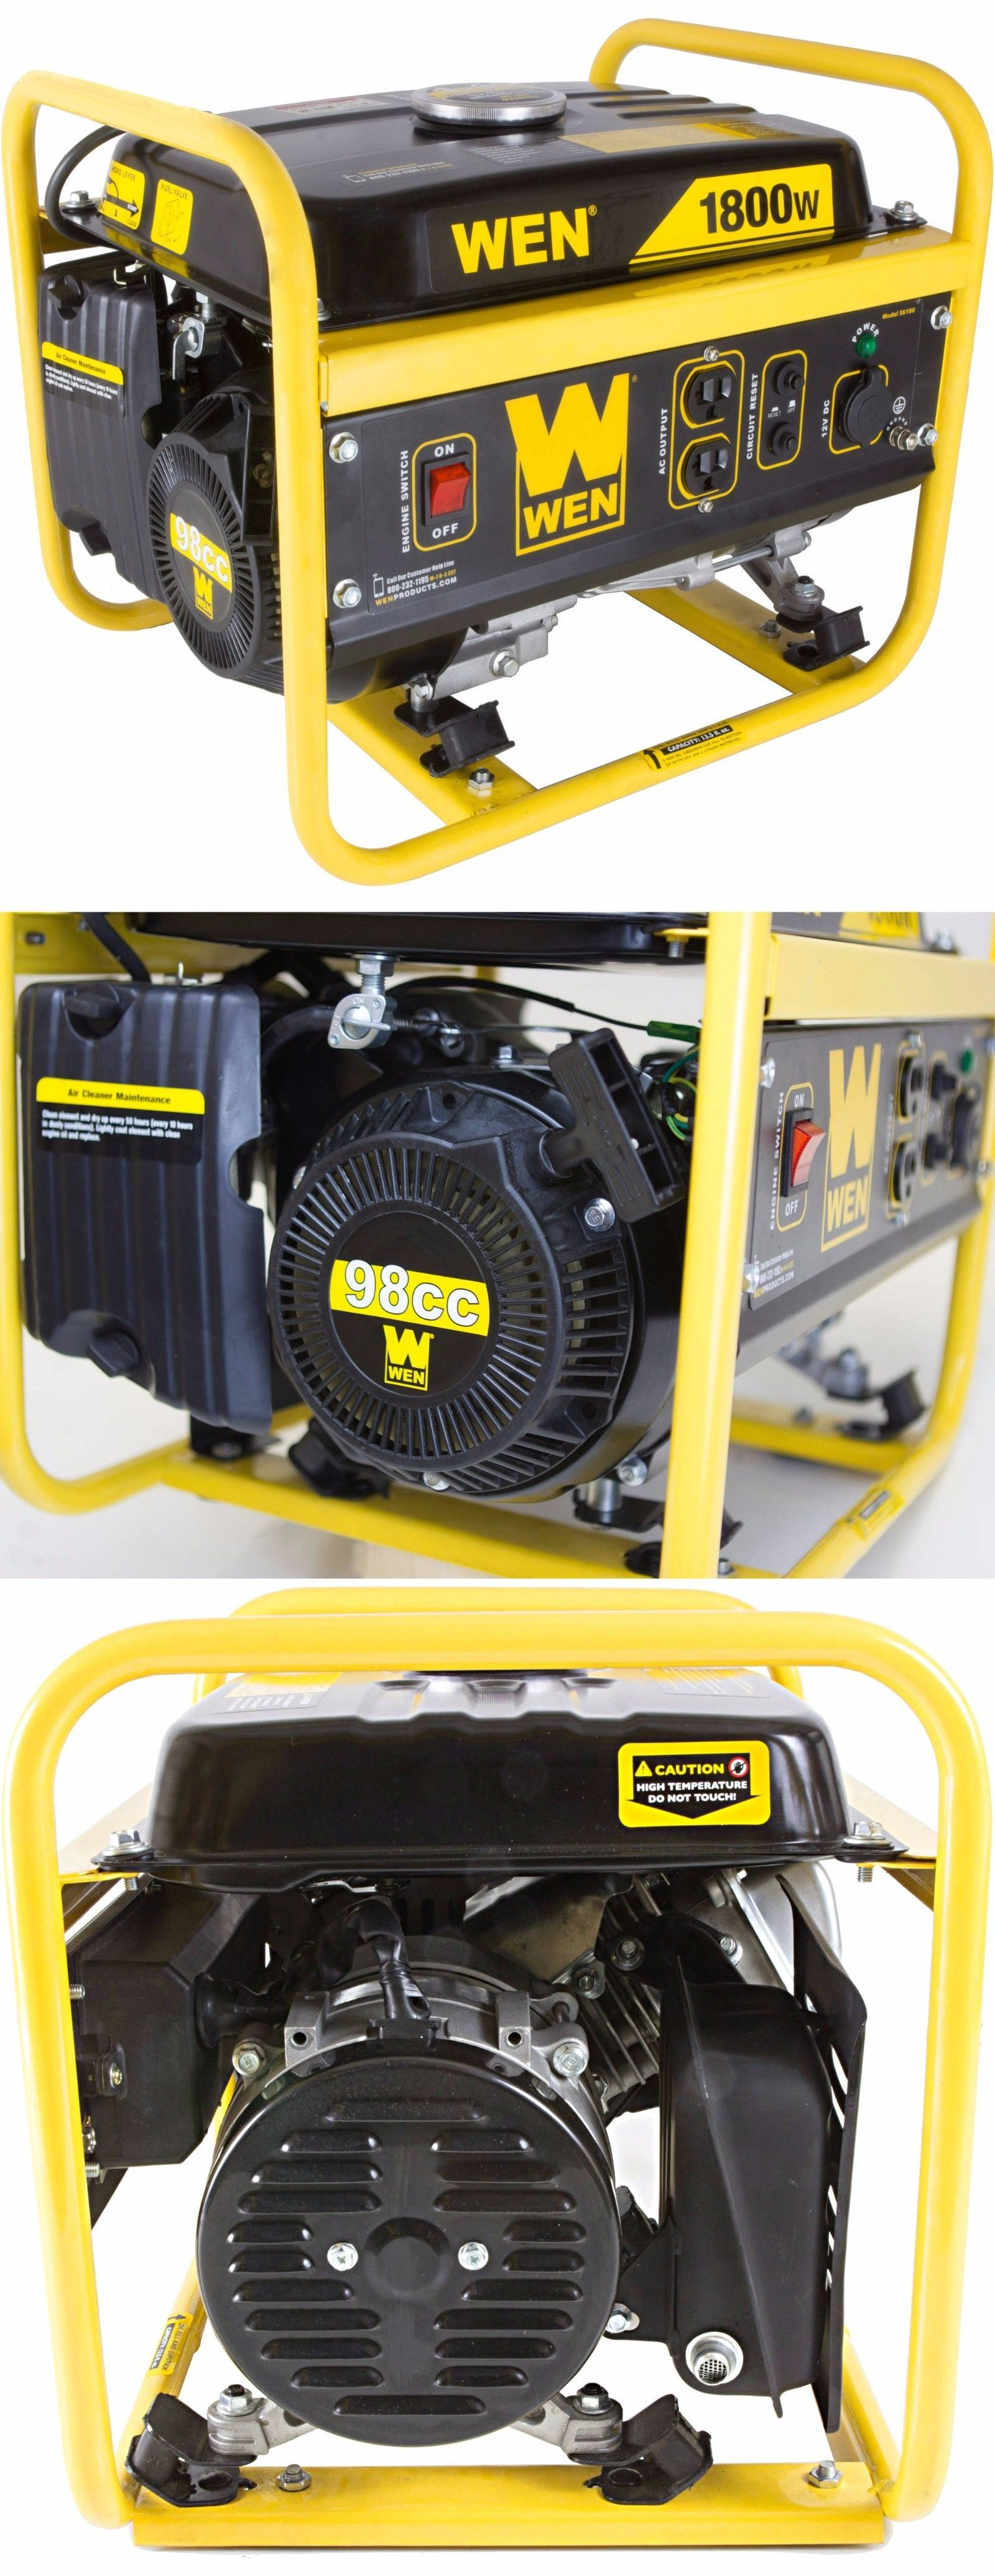 generators and heaters 16039 portable generator for camping